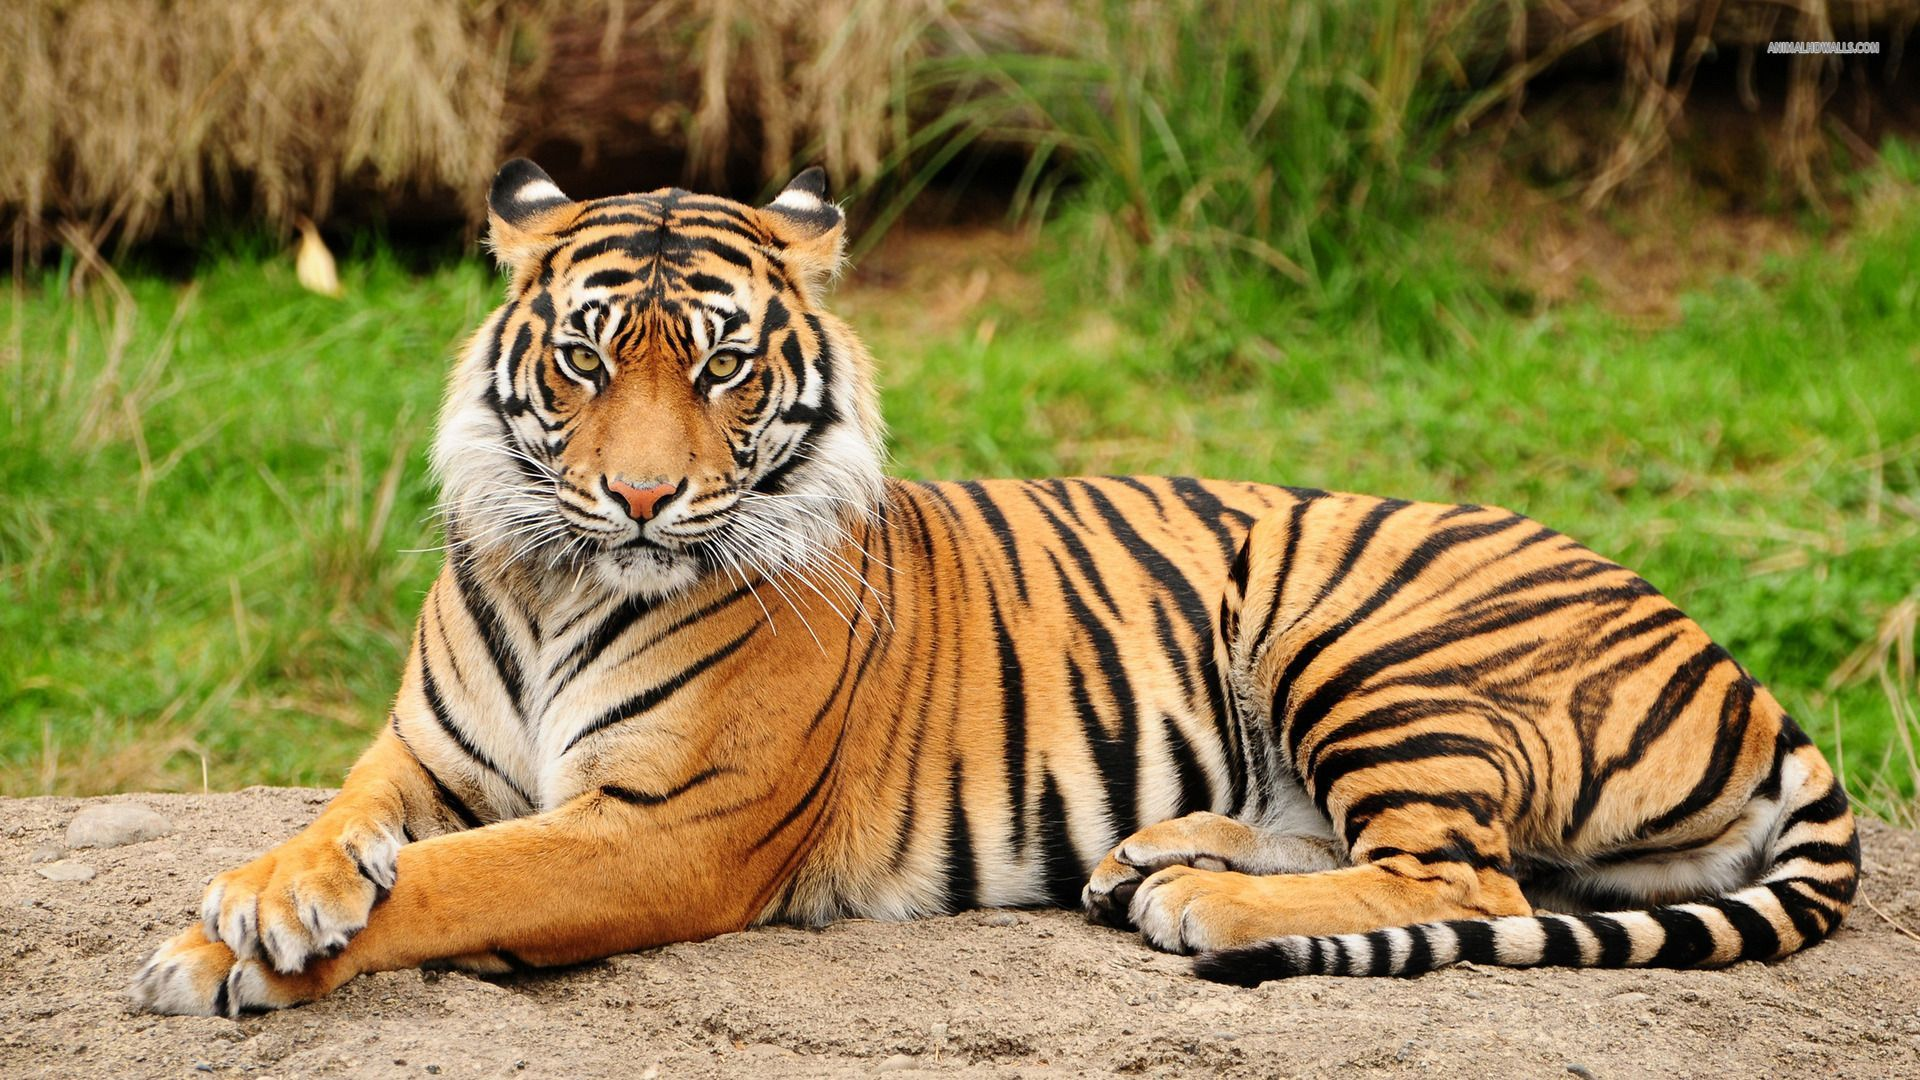 Tiger Hd Wallpapers 1920x1080 Group 92